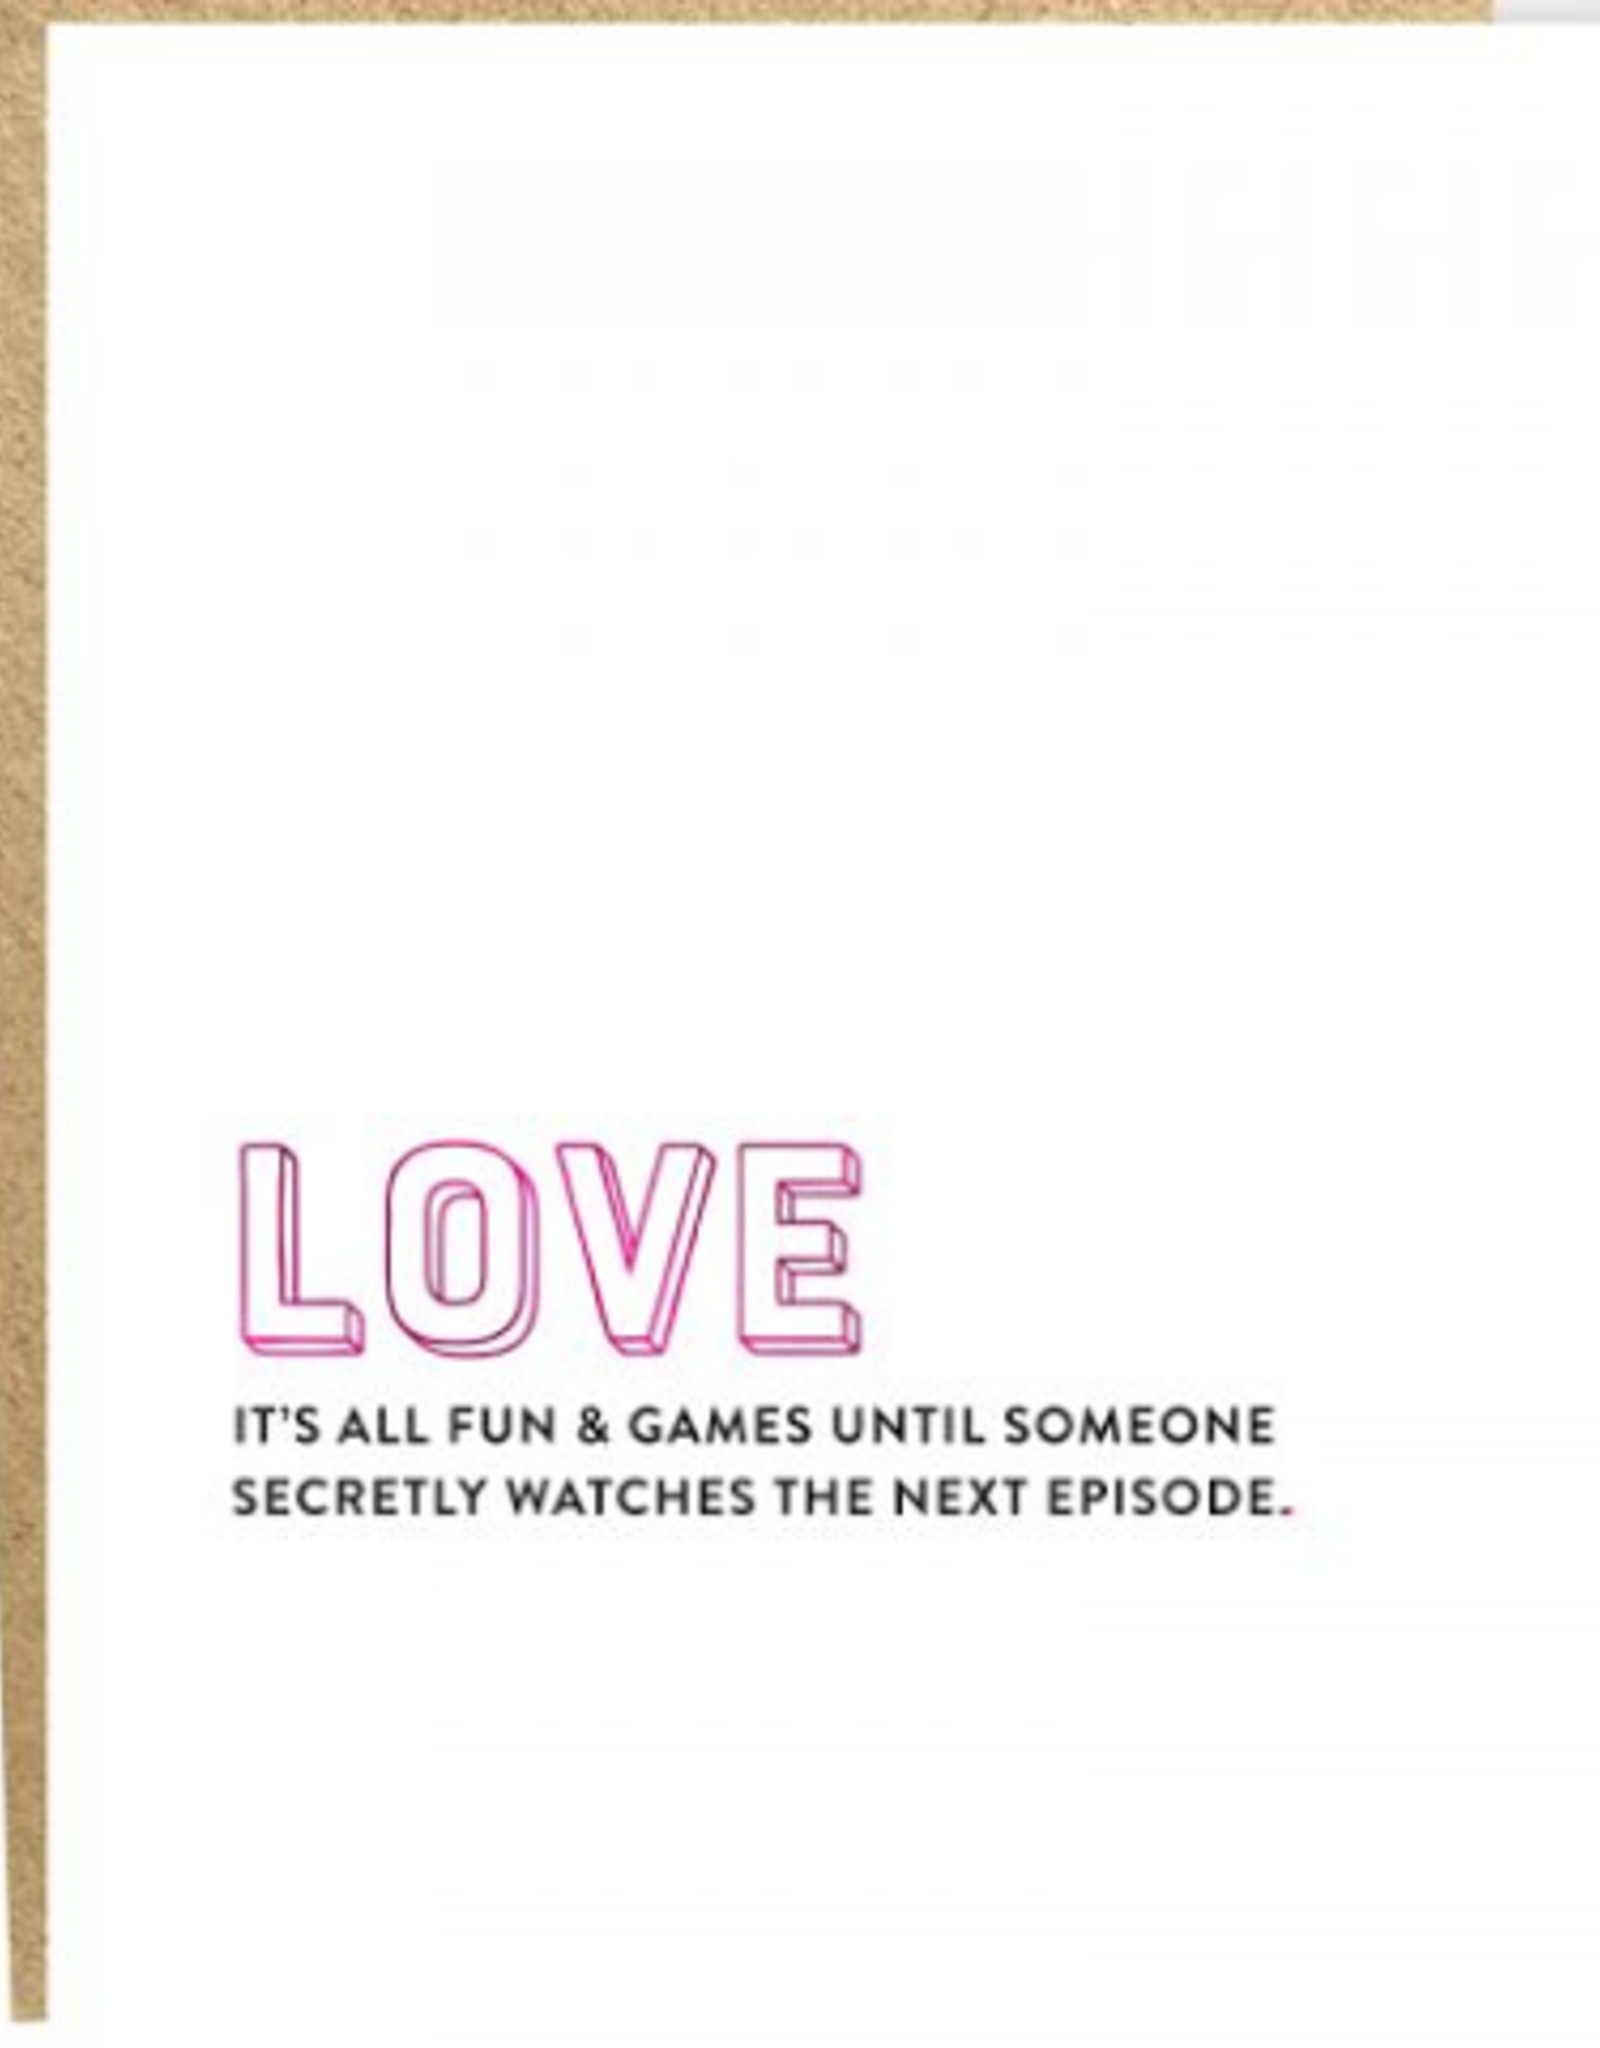 Card #462 - LOVE It's All Fun And Games Until Next Episode